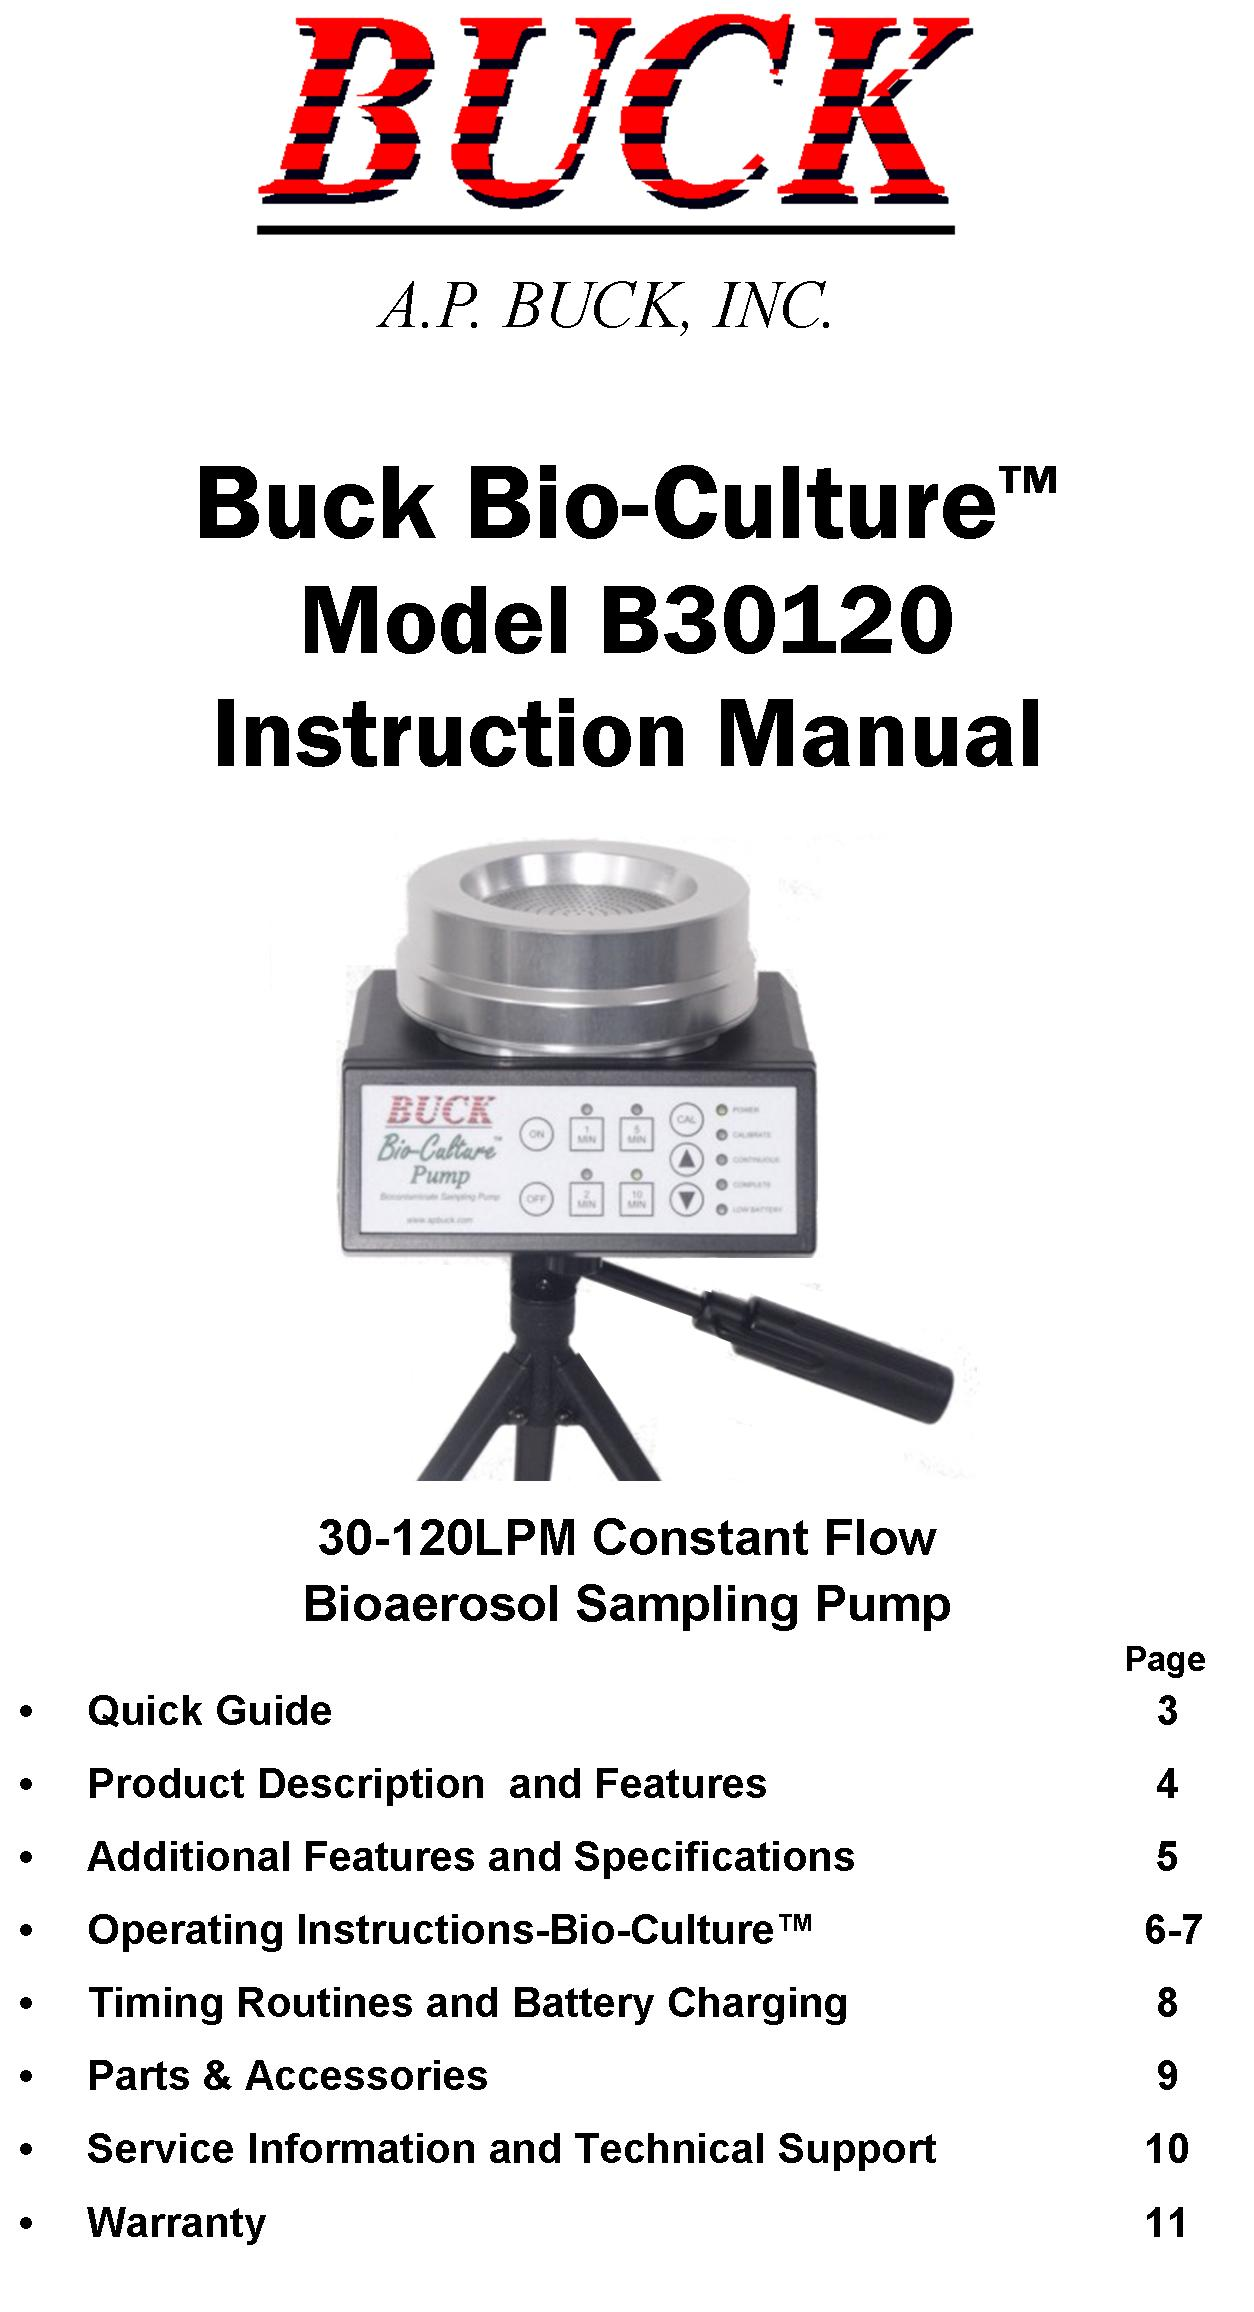 Bio-Culture Series Pump Instruction Manual